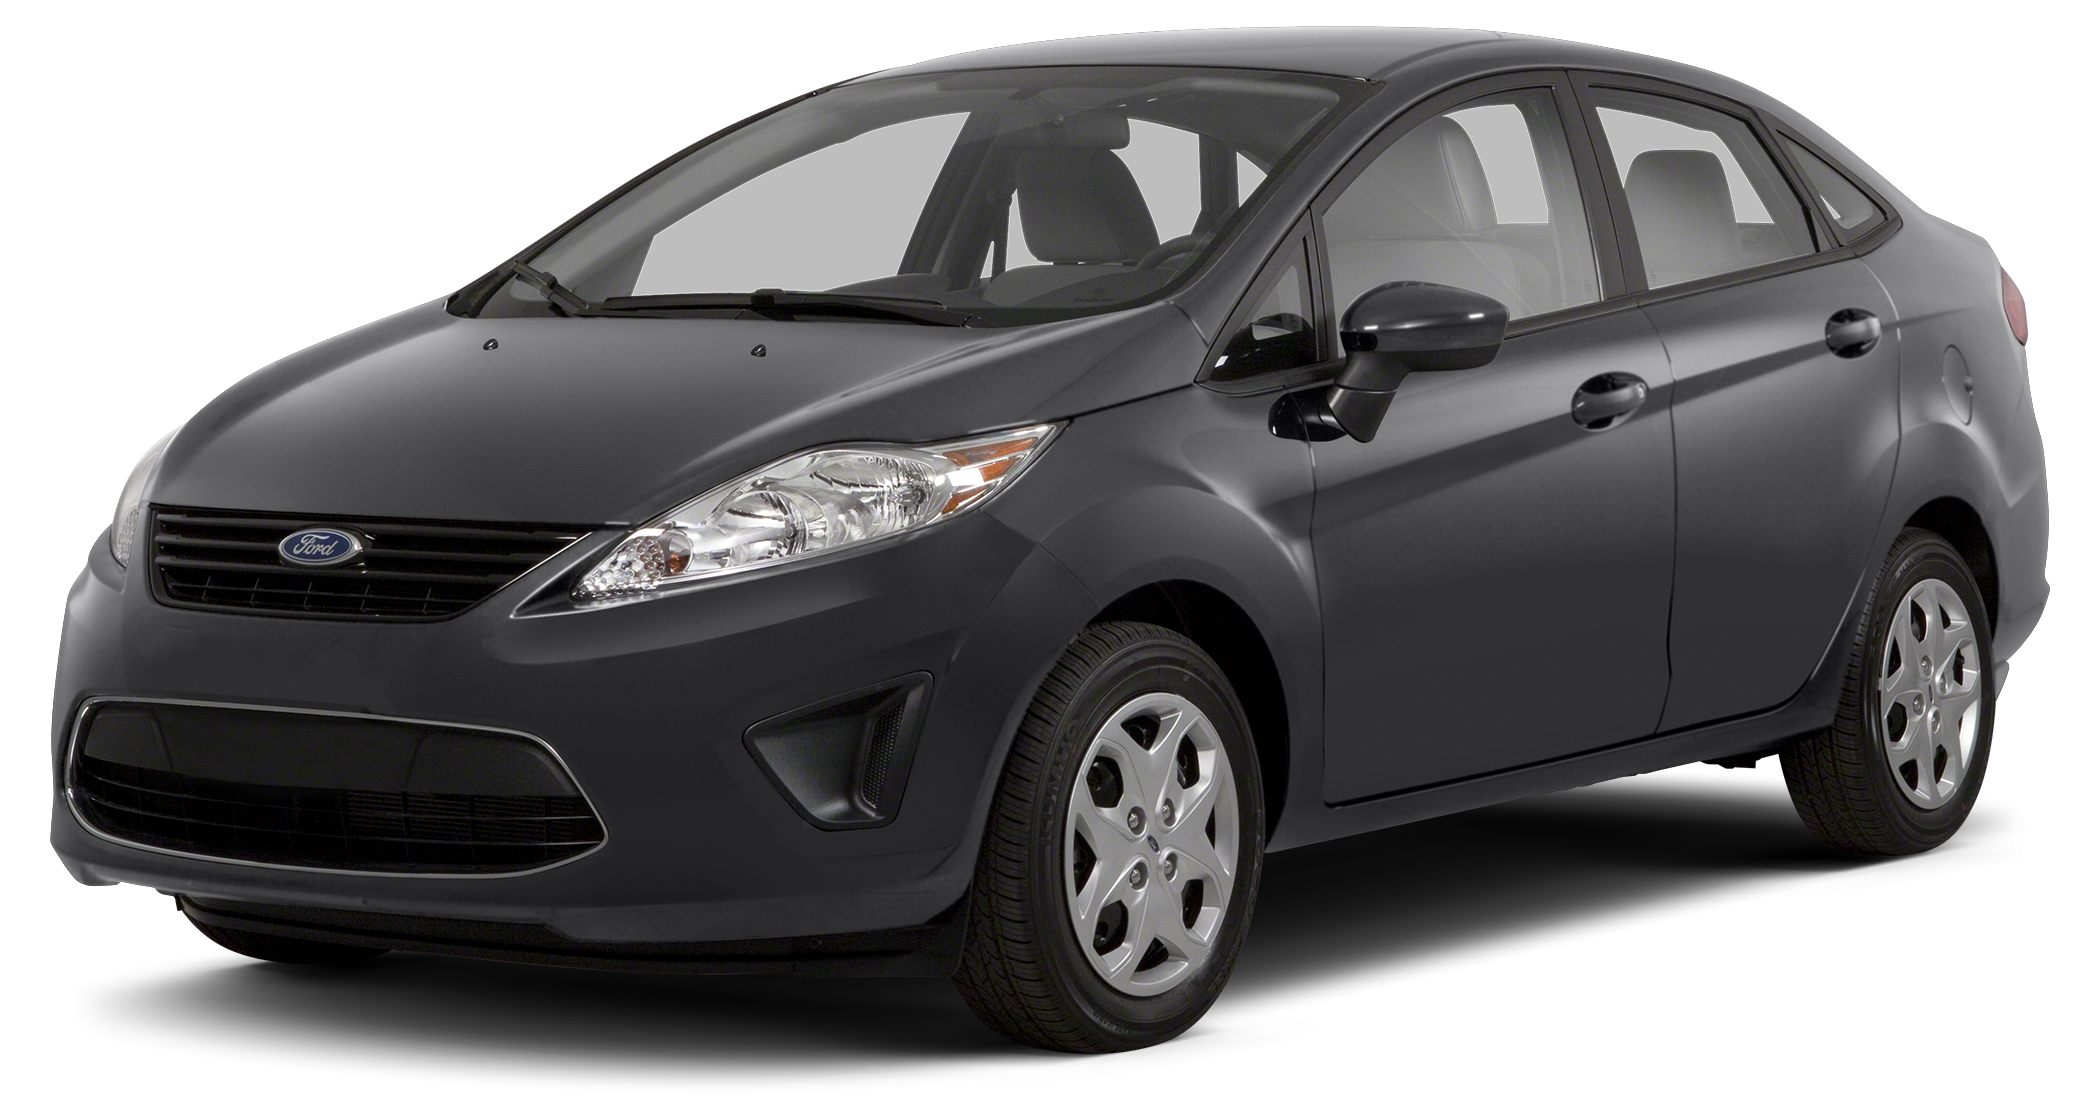 2013 Ford Fiesta SE OUR PRICESYoure probably wondering why our prices are so much lower than the